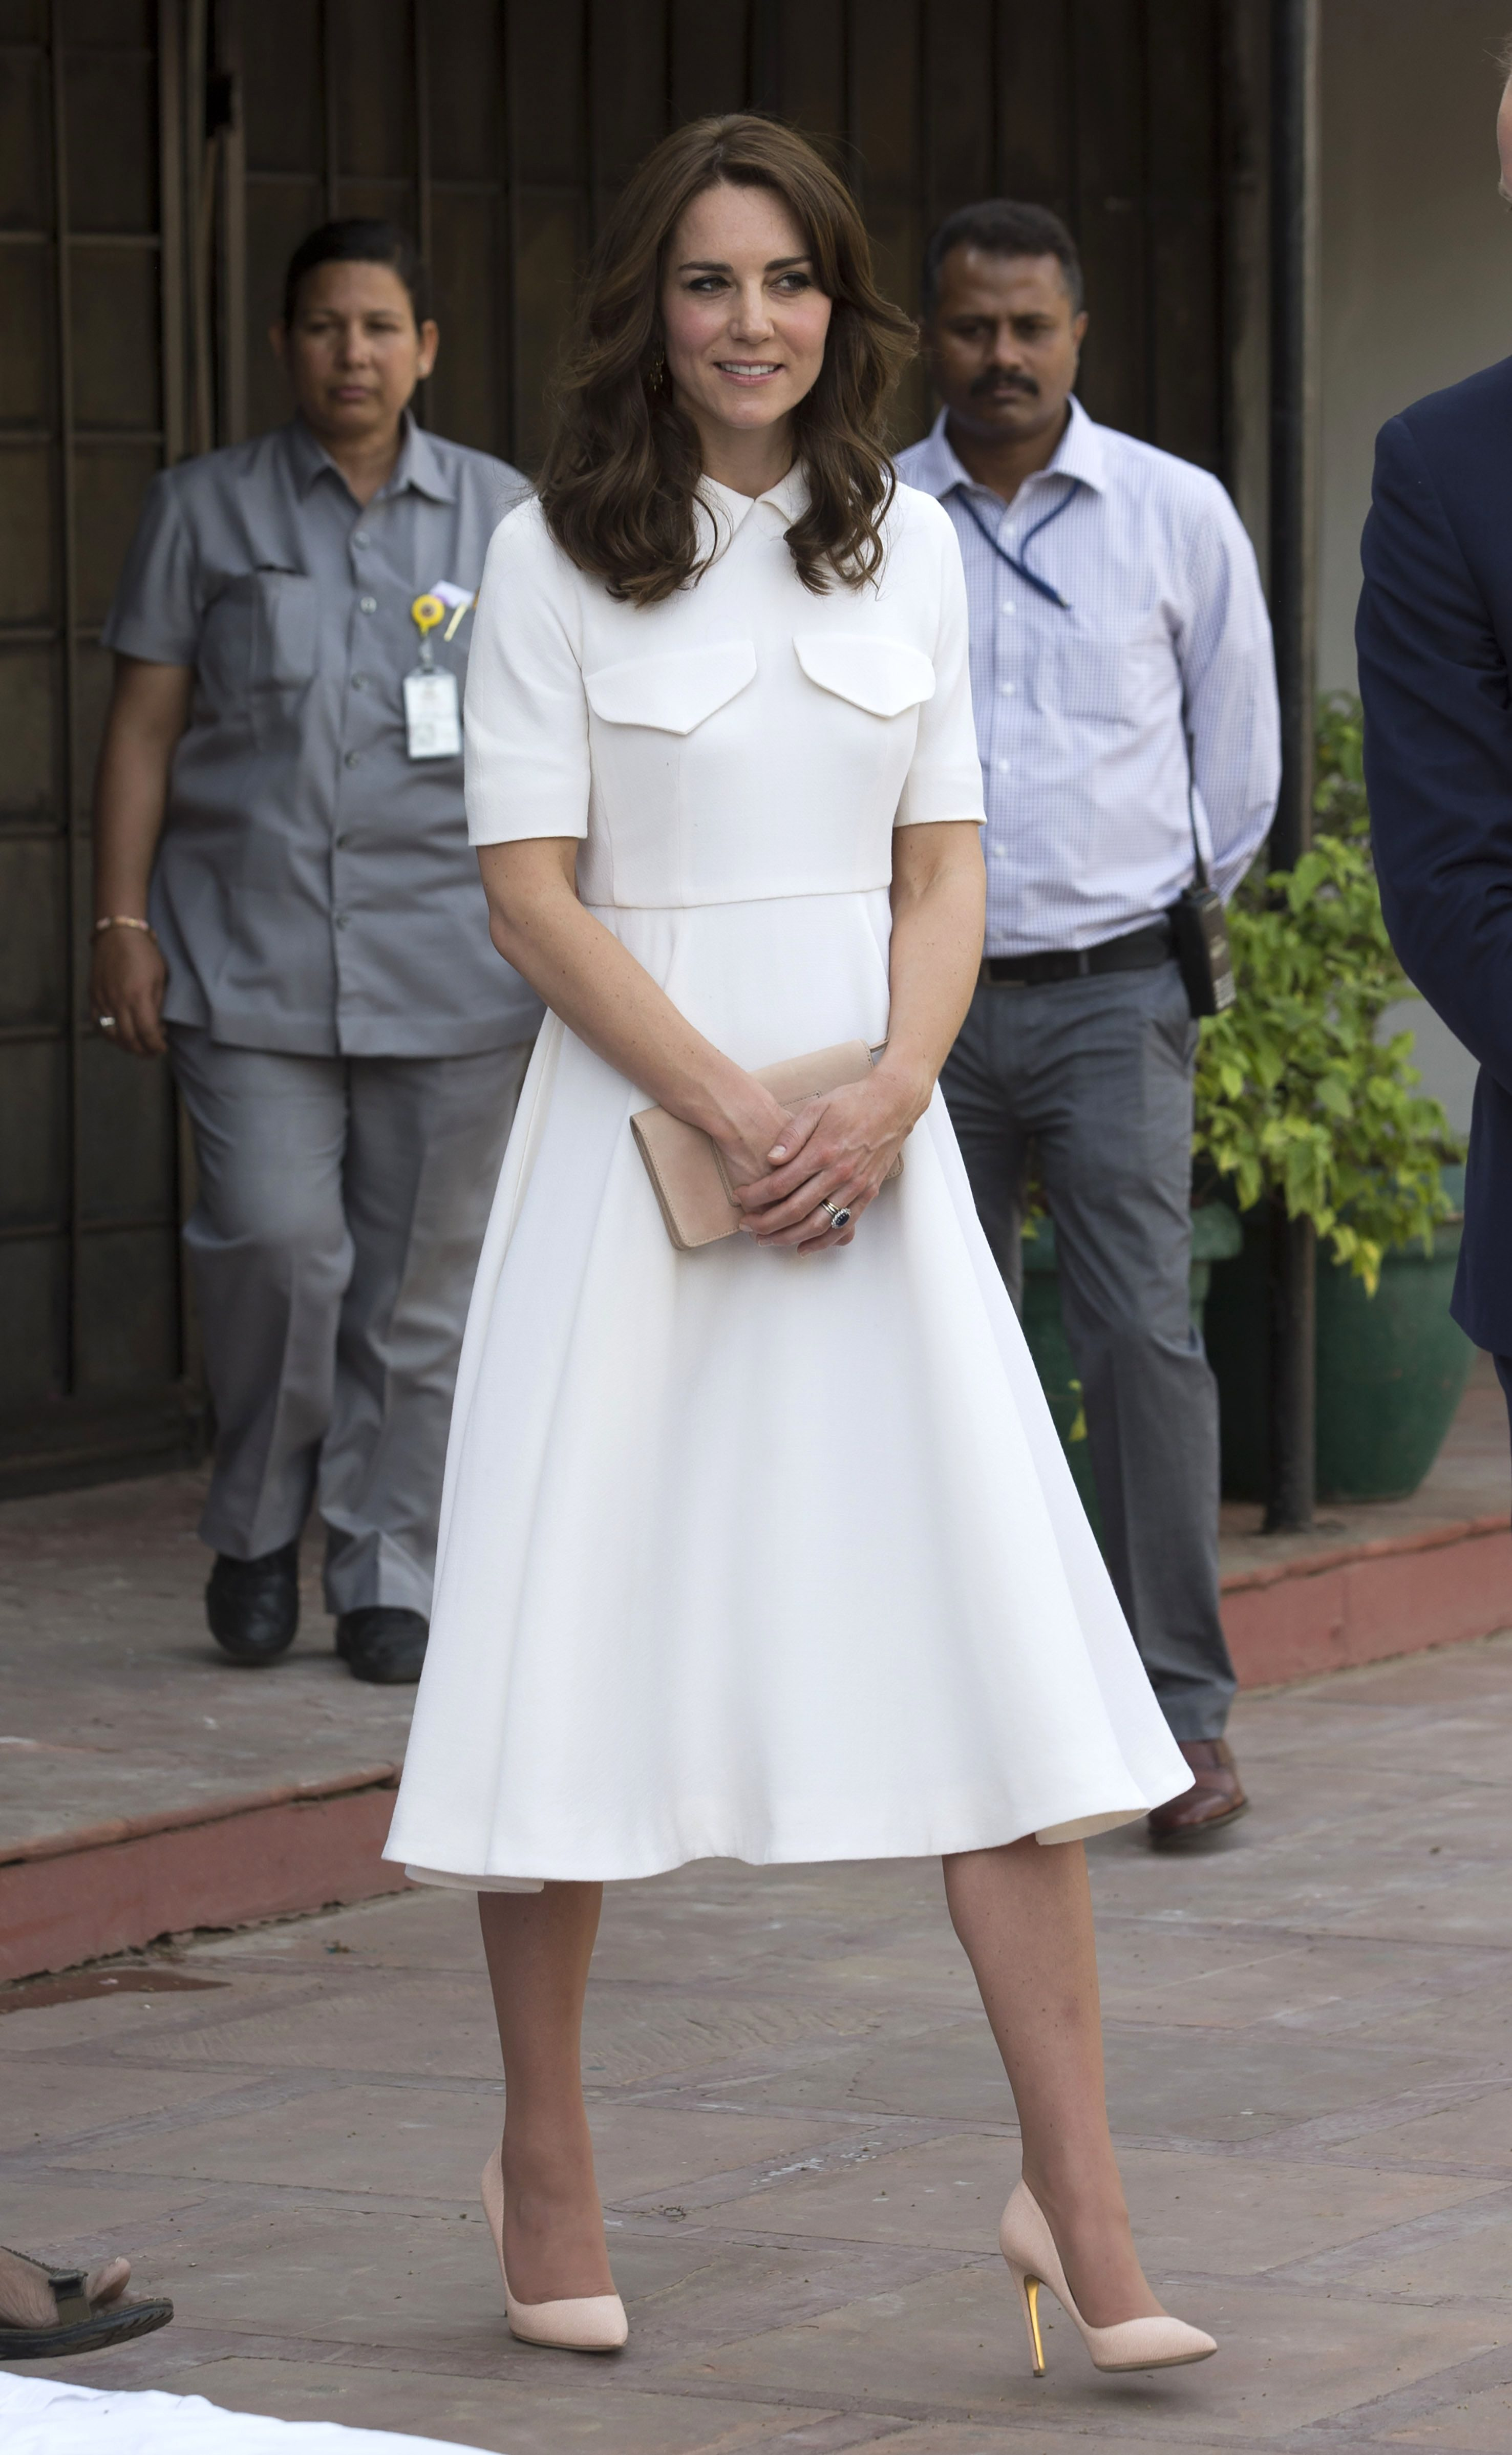 Prince William and Catherine Duchess of Cambridge visit to India - 11 Apr 2016